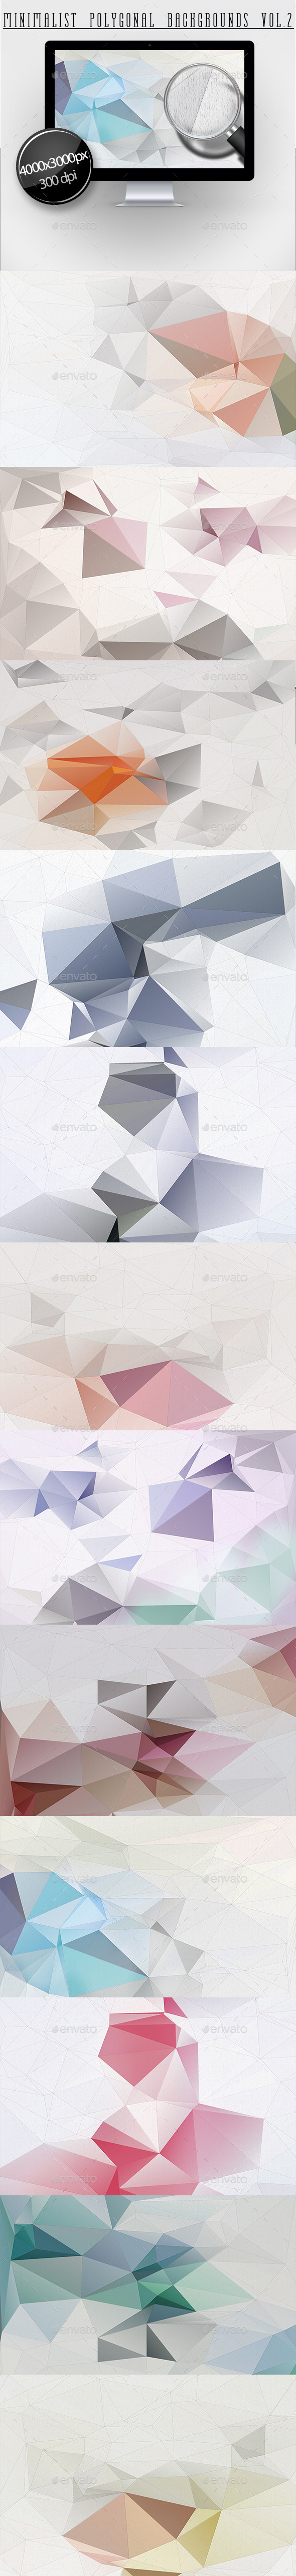 Minimalist Polygonal Backgrounds Vol.2 - Abstract Backgrounds